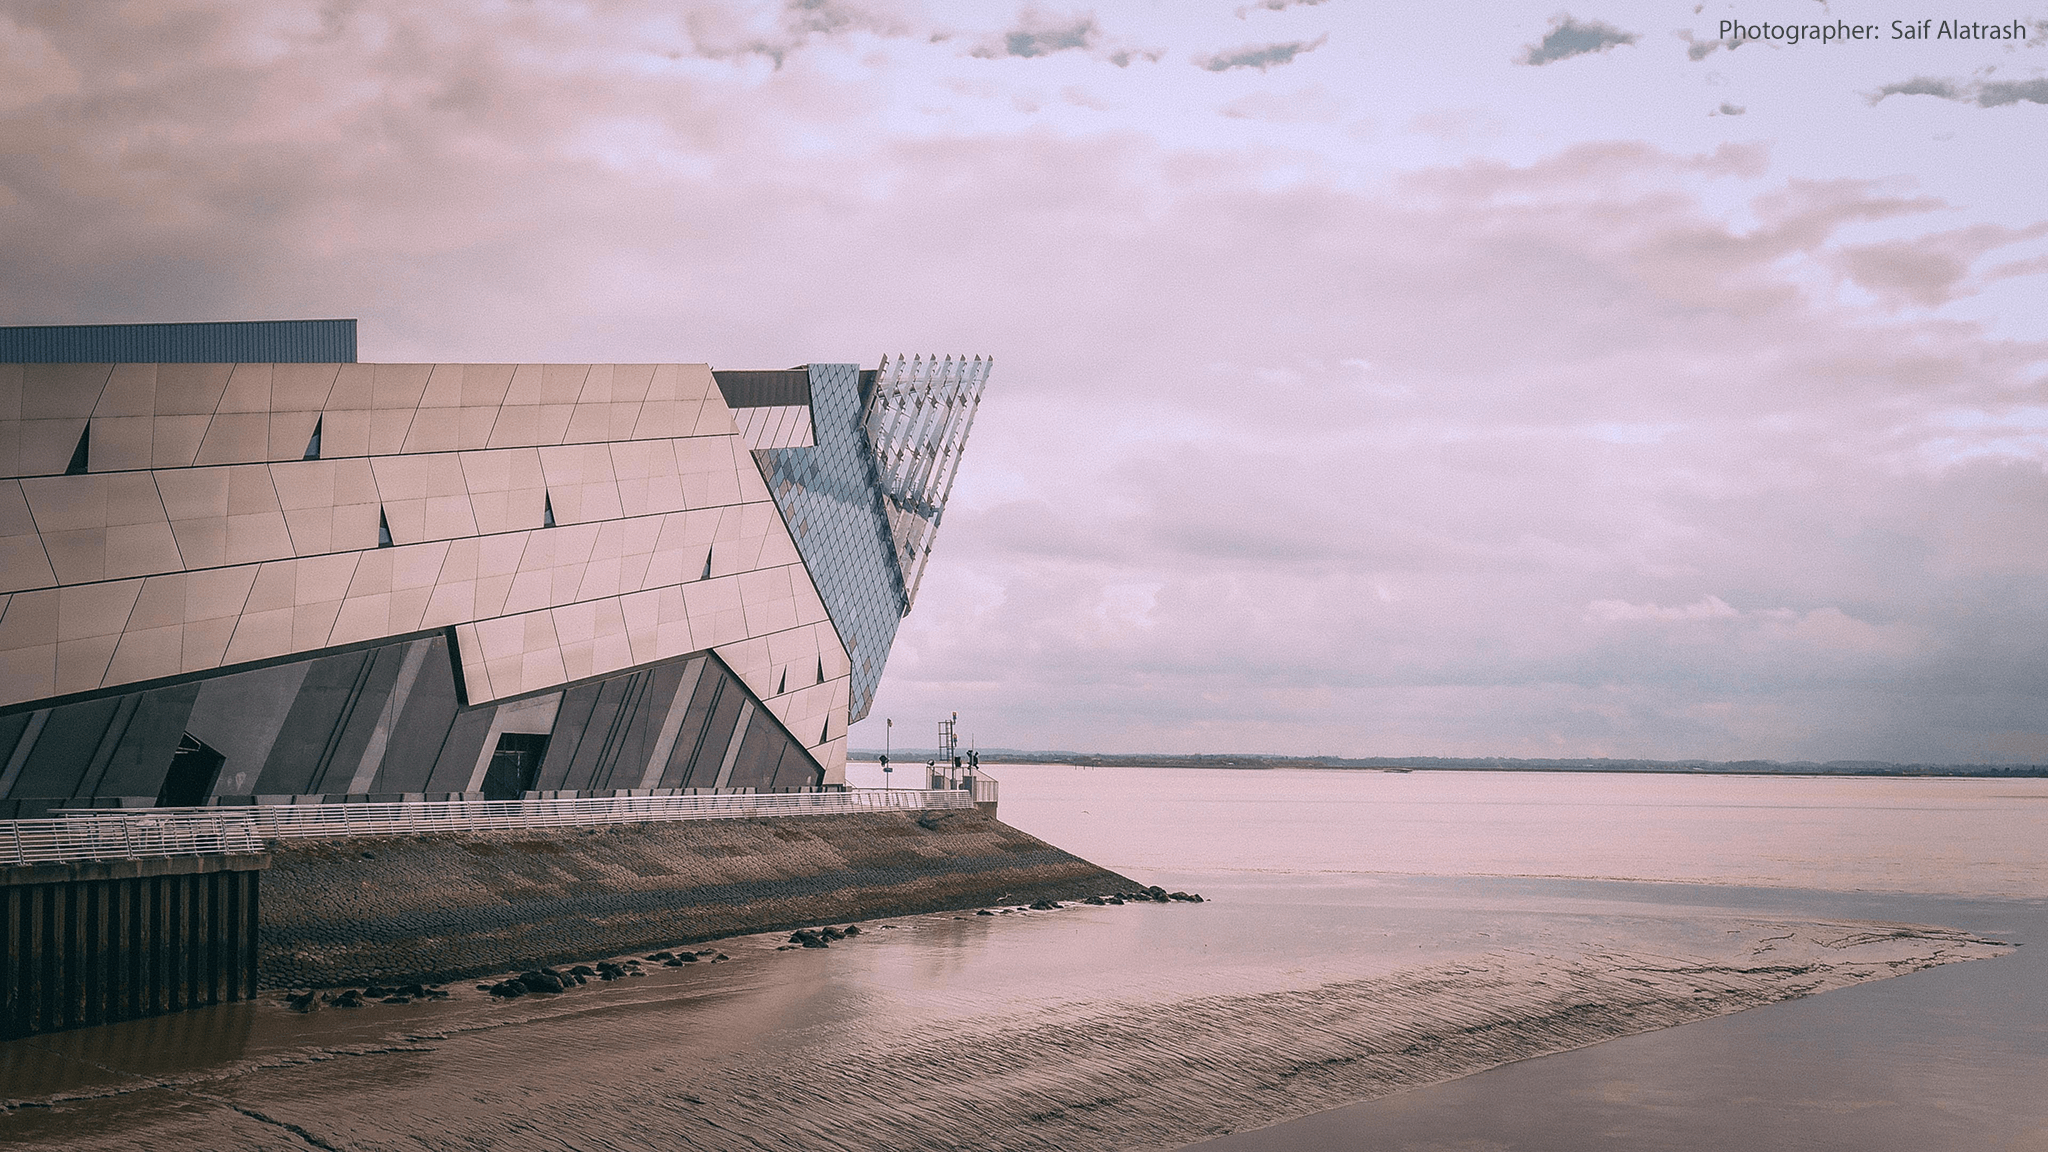 The Deep in Kingston-Upon-Hull, a very distinctive building. This photo was taken by international student Saif Alatrash. The aquarium is home to turtles, penguins, sharks, sting-rays and many more sea creatures.